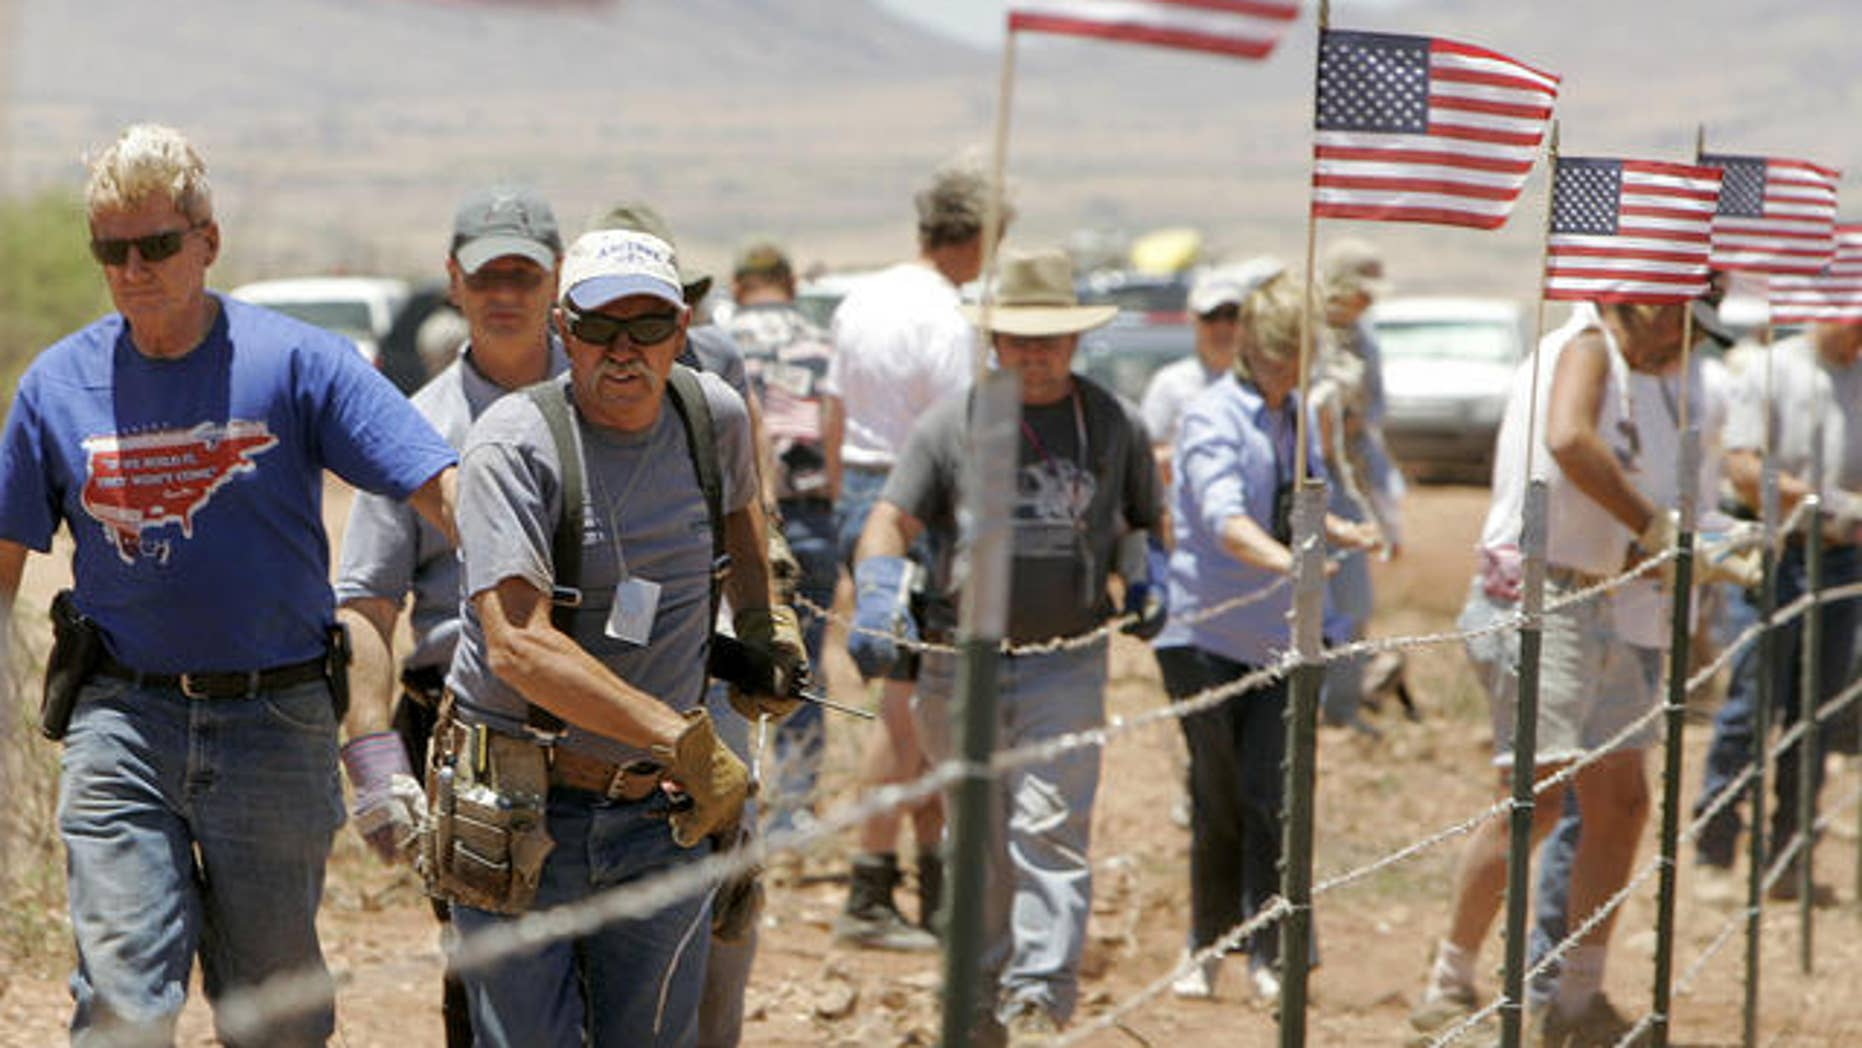 In this 2006 photo, Minuteman volunteers build a fence along the U.S./Mexican border near Palominas, Ariz., in the hope of reducing illegal immigration. Now, border militias in the state are gaining support after a bill that would have created a civilian border group failed in the state Legislature.